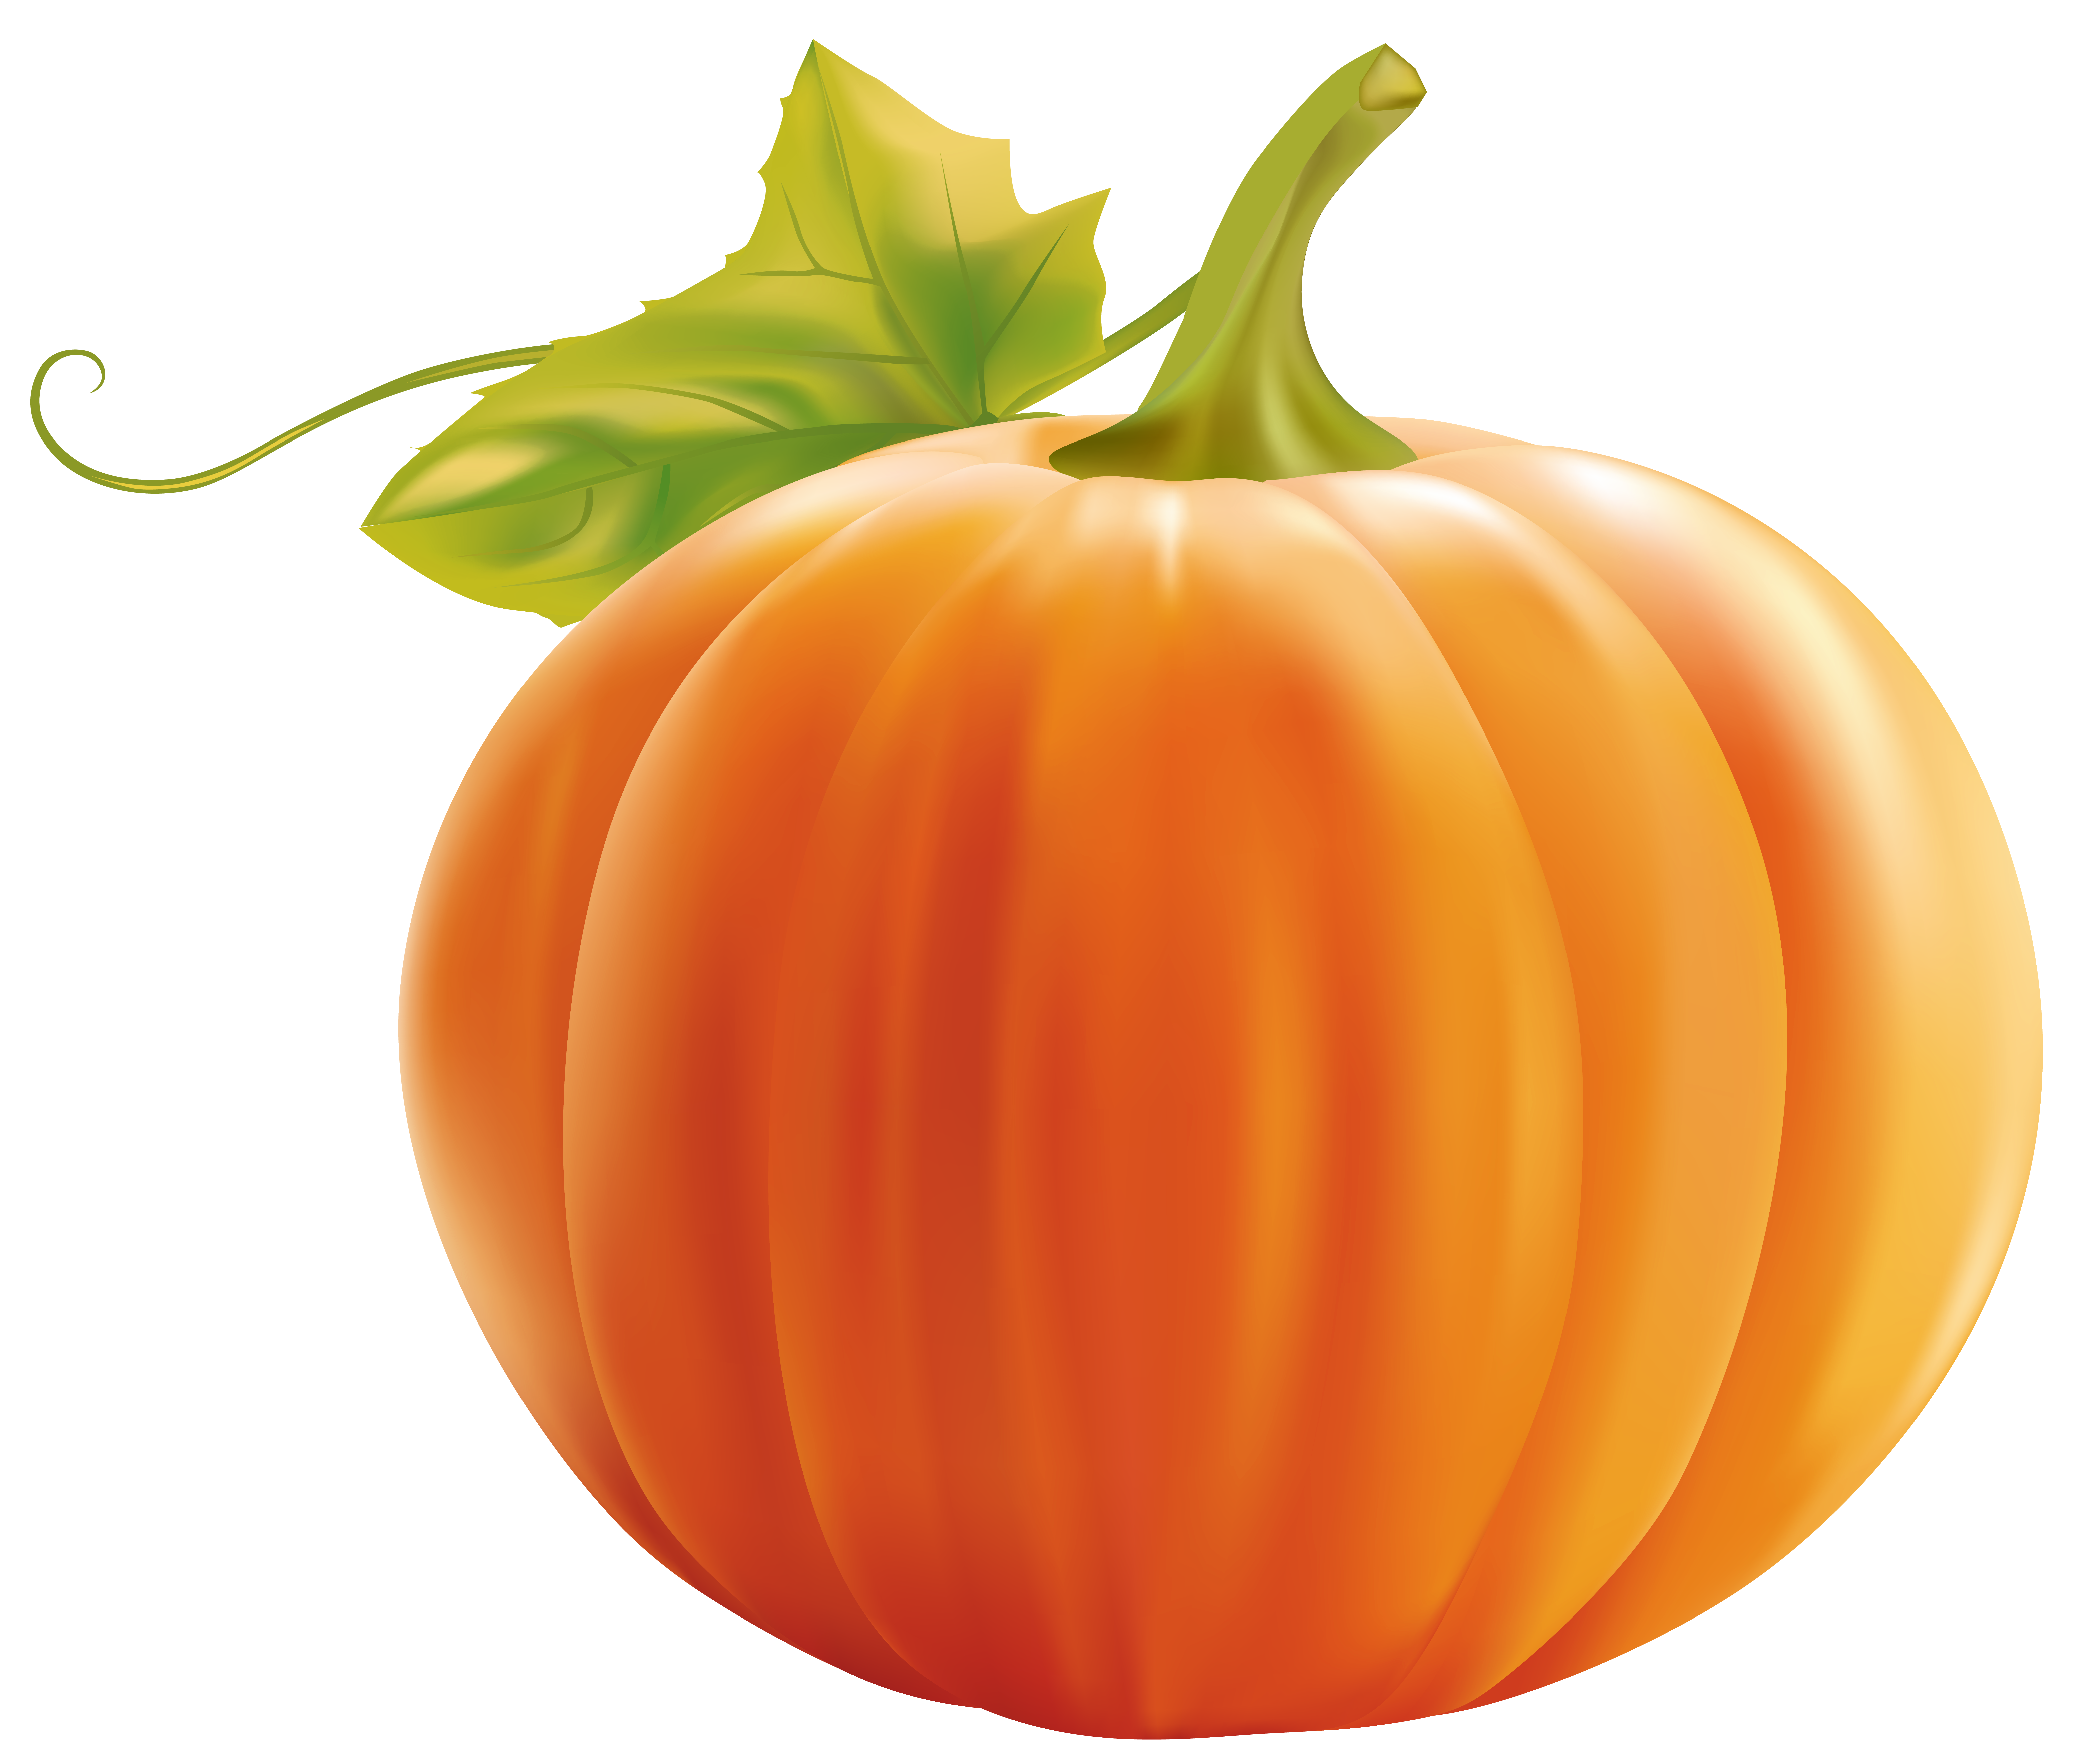 Png image gallery yopriceville. Pumpkin clipart jpg free